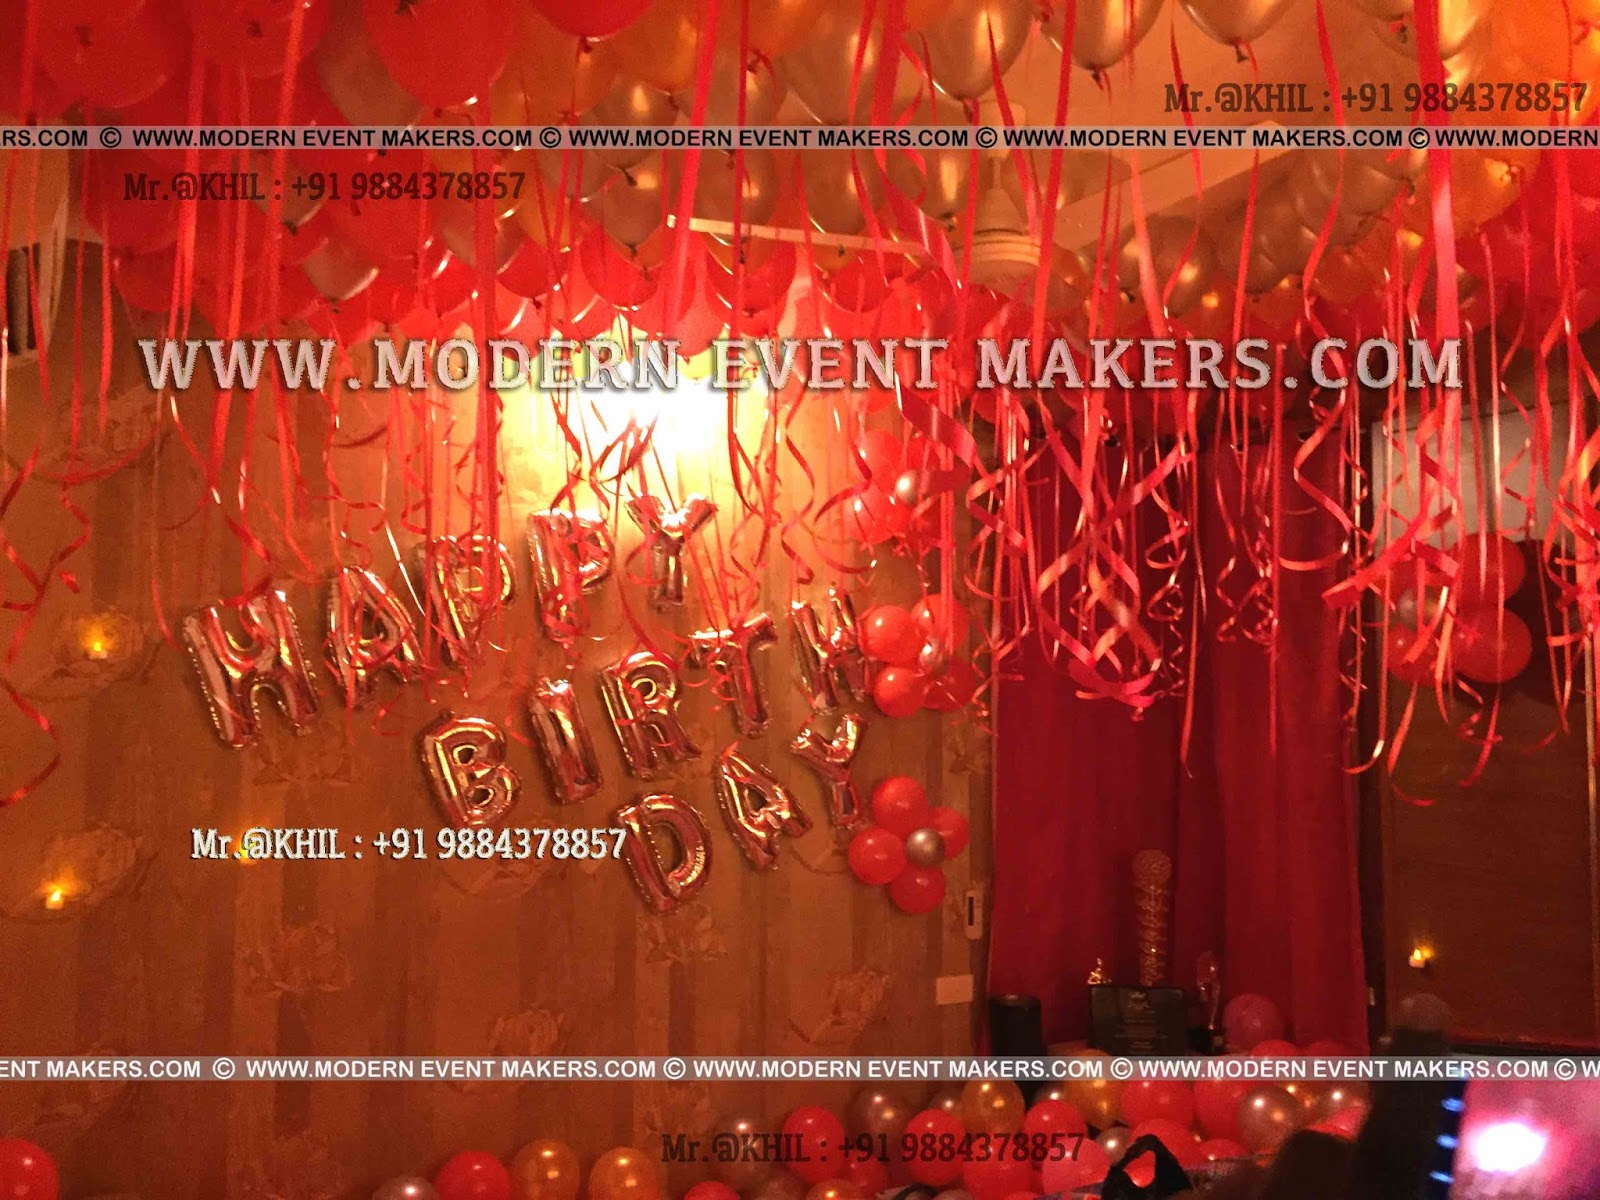 The Best Birthday Party Organiser In Chennai 9884378857 Balloon Surprise Decoration At Home